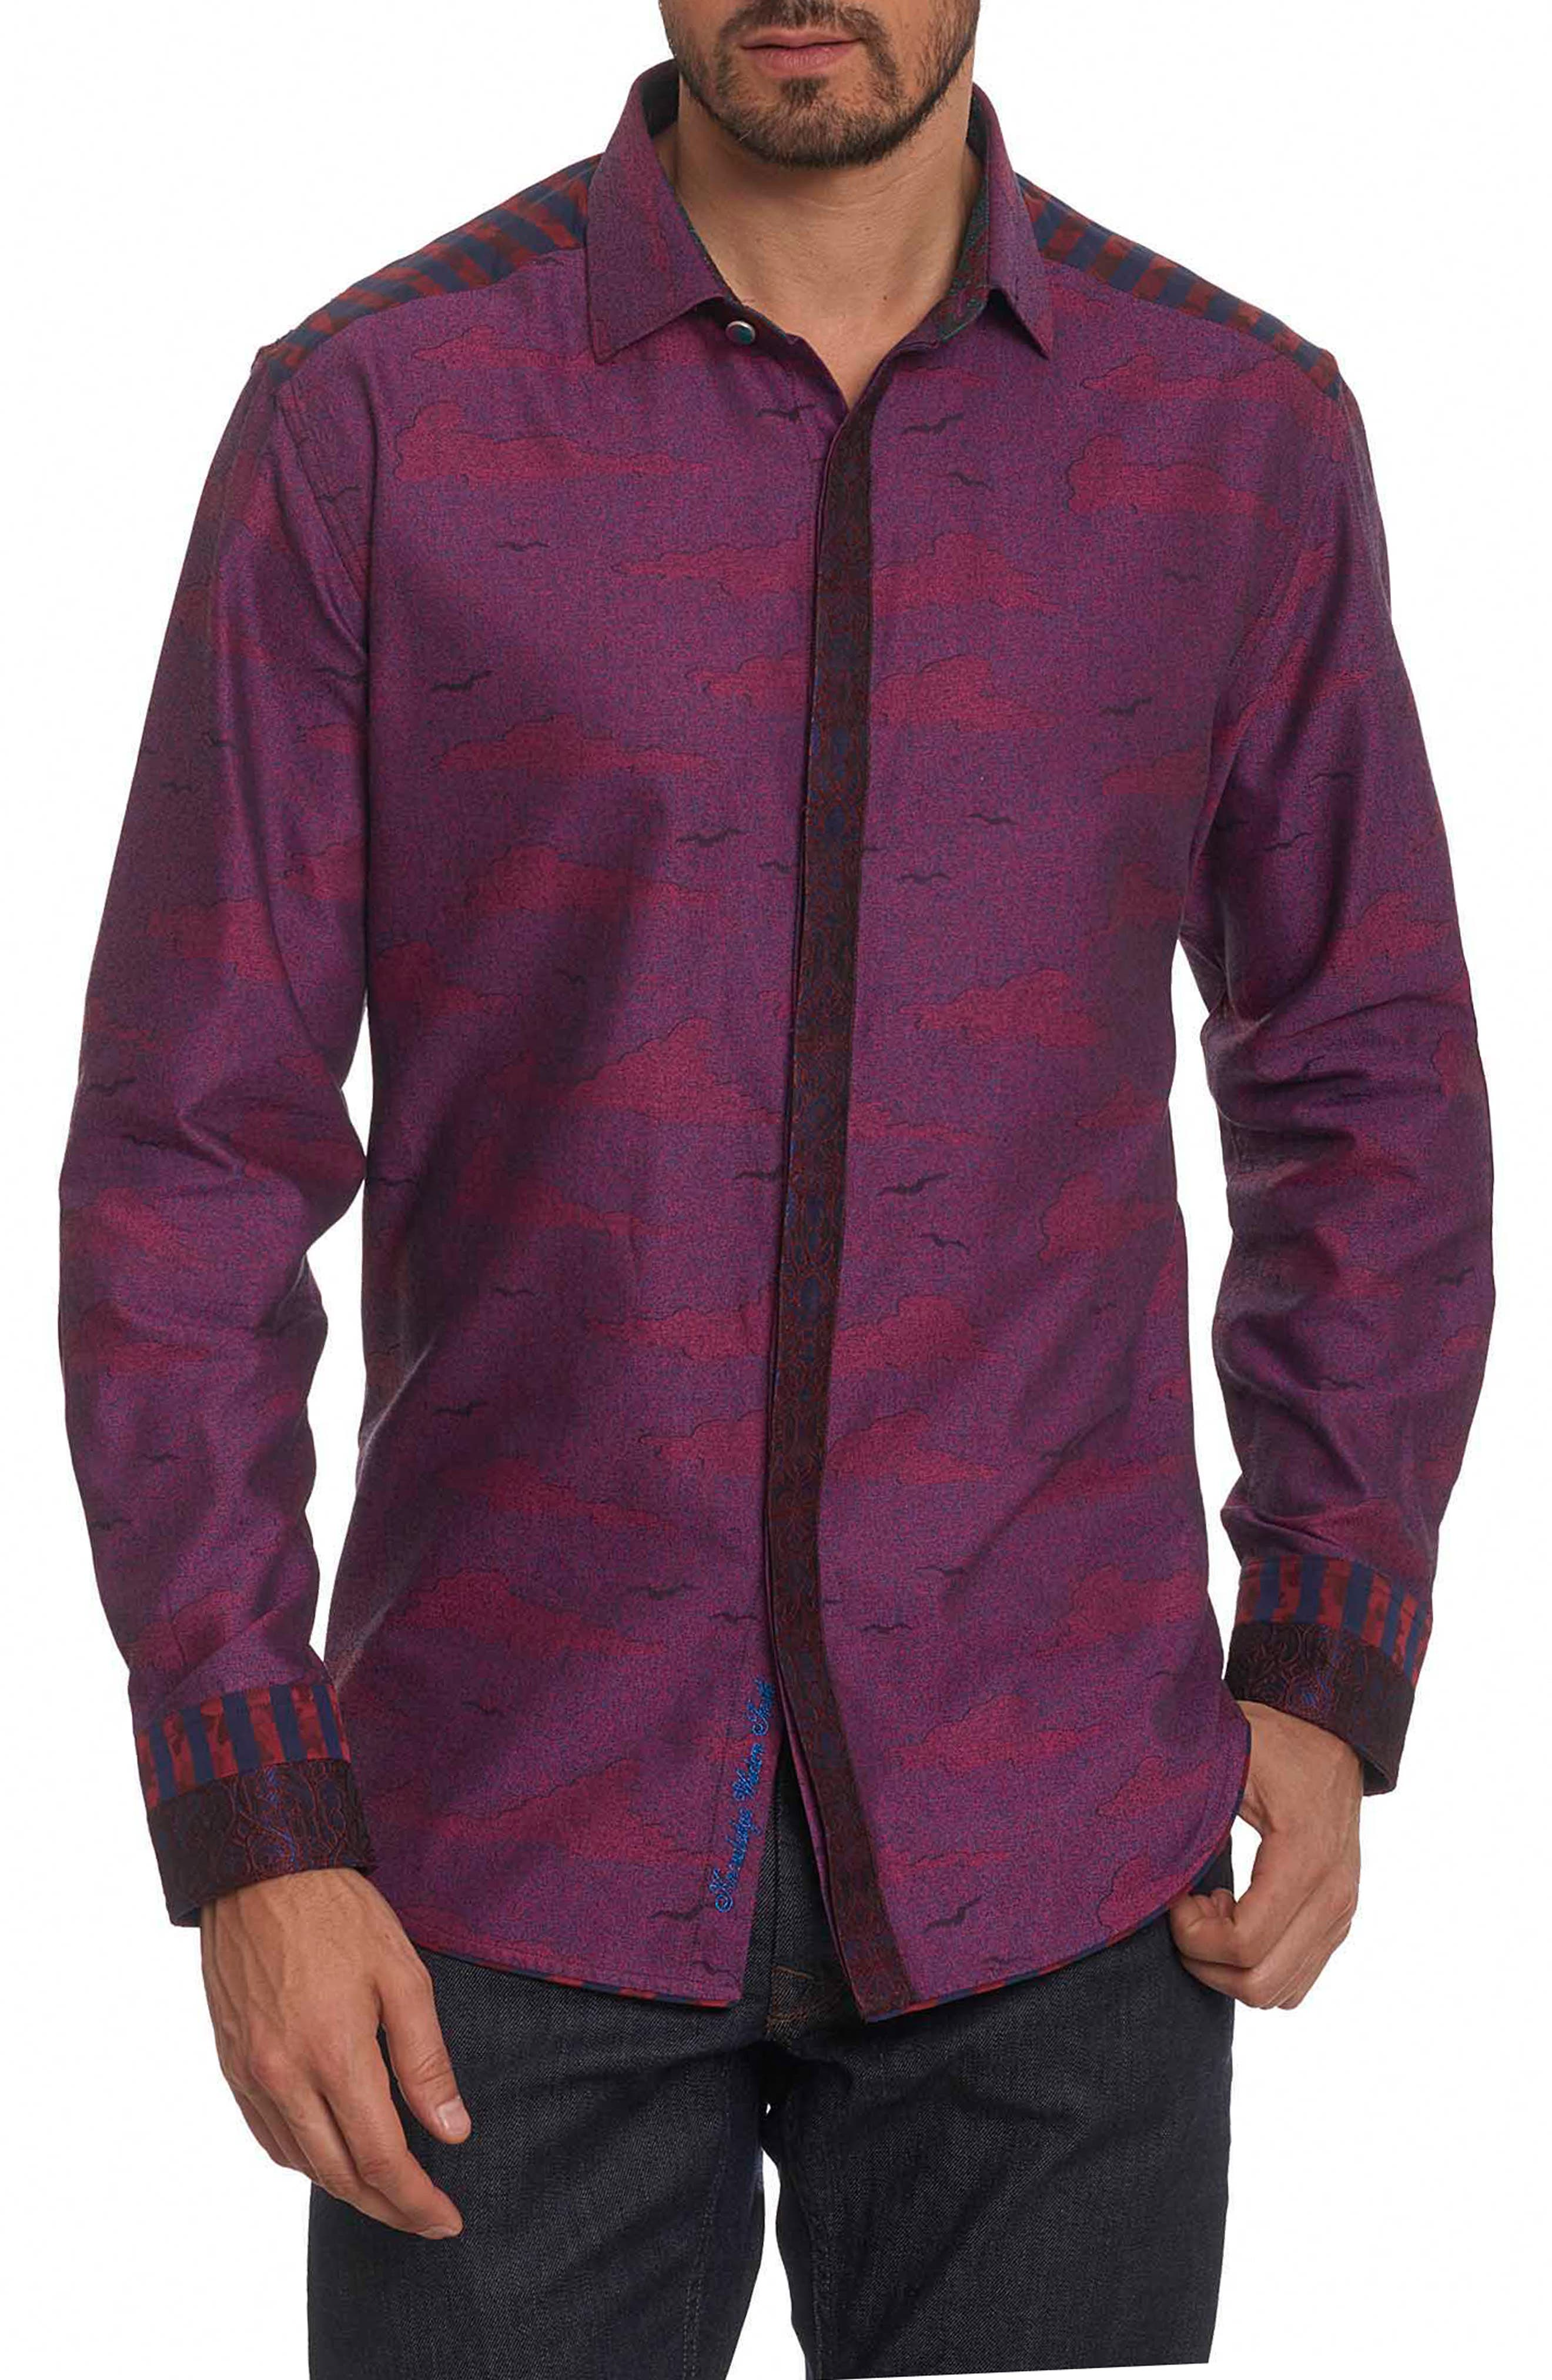 Drakon Limited Edition Classic Fit Sport Shirt,                         Main,                         color, Merlot